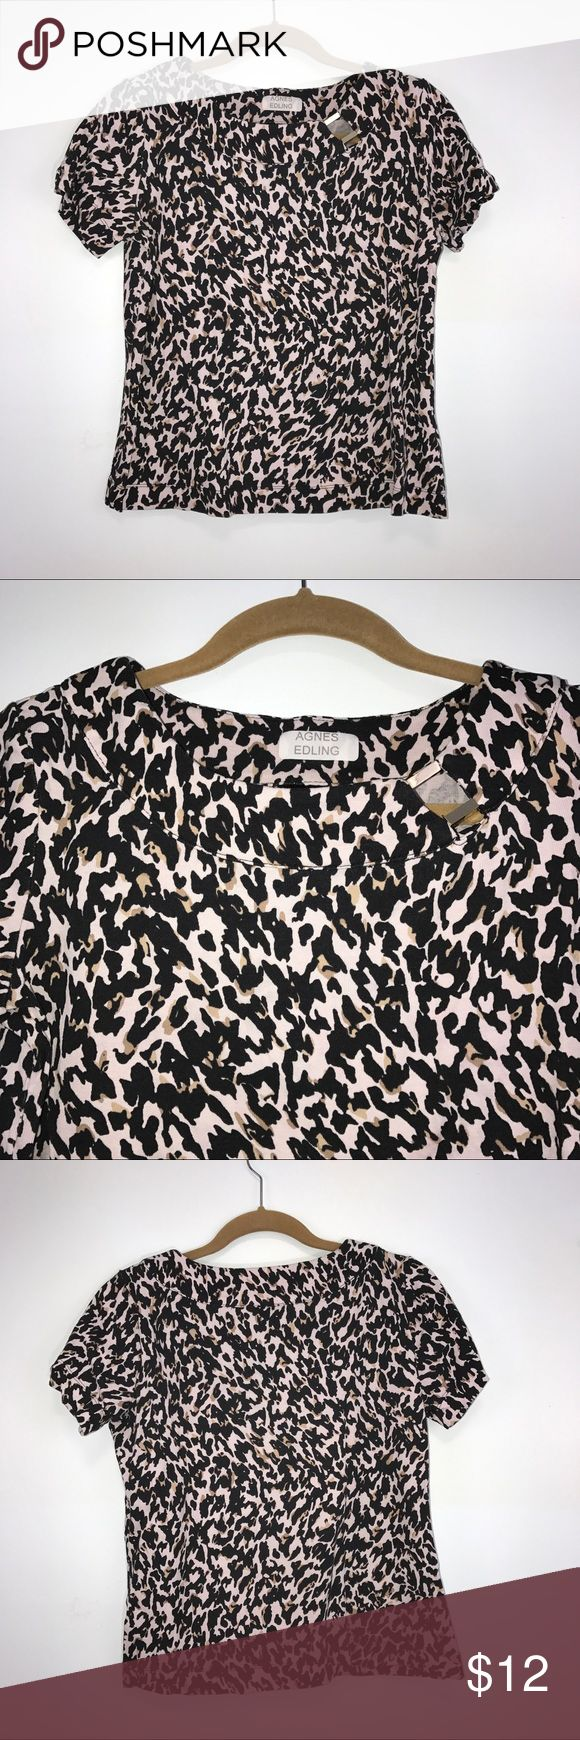 "Rafaella Black Tan Animal Print Woman's Top M Rafaella Black and Tan, Animal Print Top. Has gold bars on neckline. Lying flat, approximate measurements are:  bust 21""; waist 20""; hip 21""; length 21"". (L01-09)     🌼 No holes, piling or stains. Items stored in smoke free, pet free, perfume free environment. No trades or modeling. Same or next day shipping.  Save by bundling. All offers should be submitted with the offer button. Rafaella Tops"